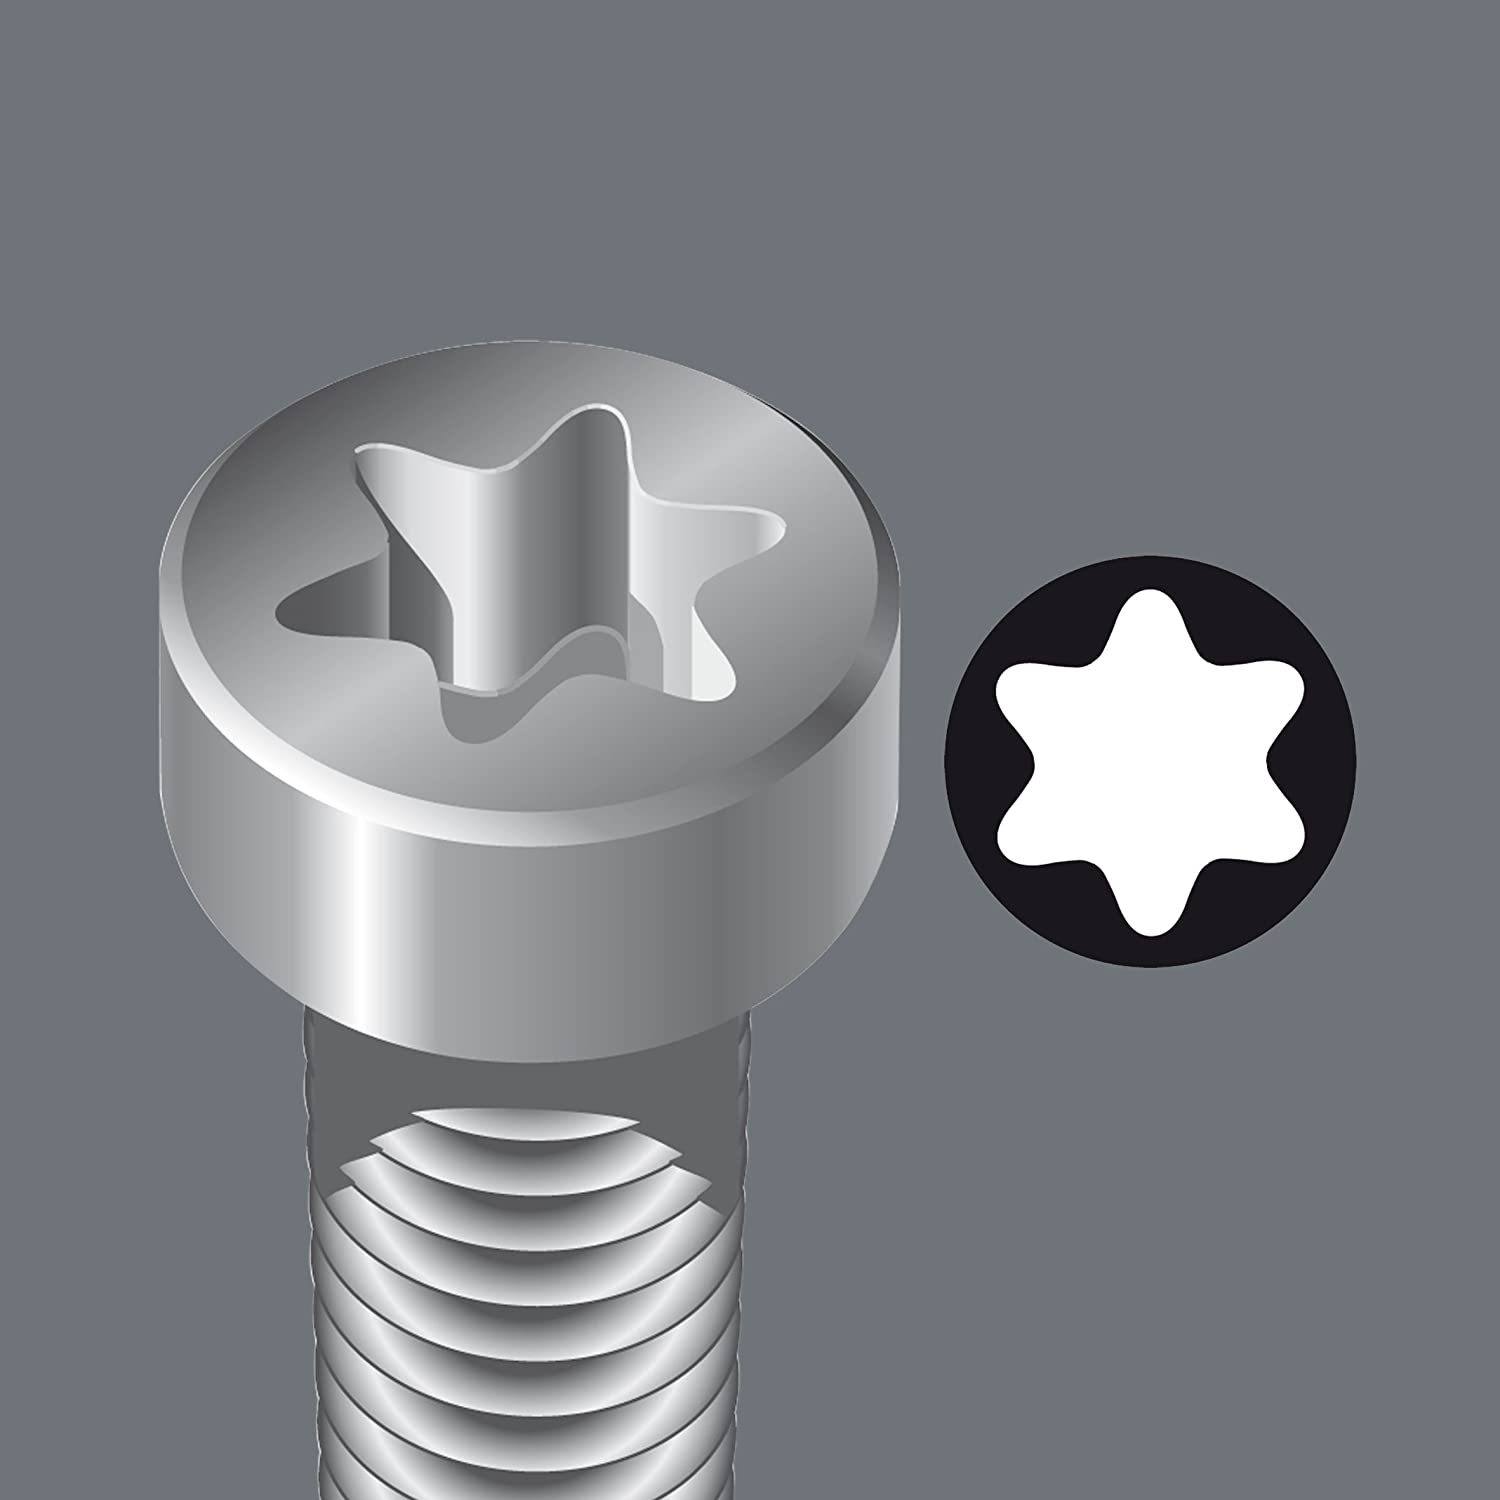 Wera 05003837001 8767 Torx Zyklop Bit Socket with Holding Function 55mm x 60mm